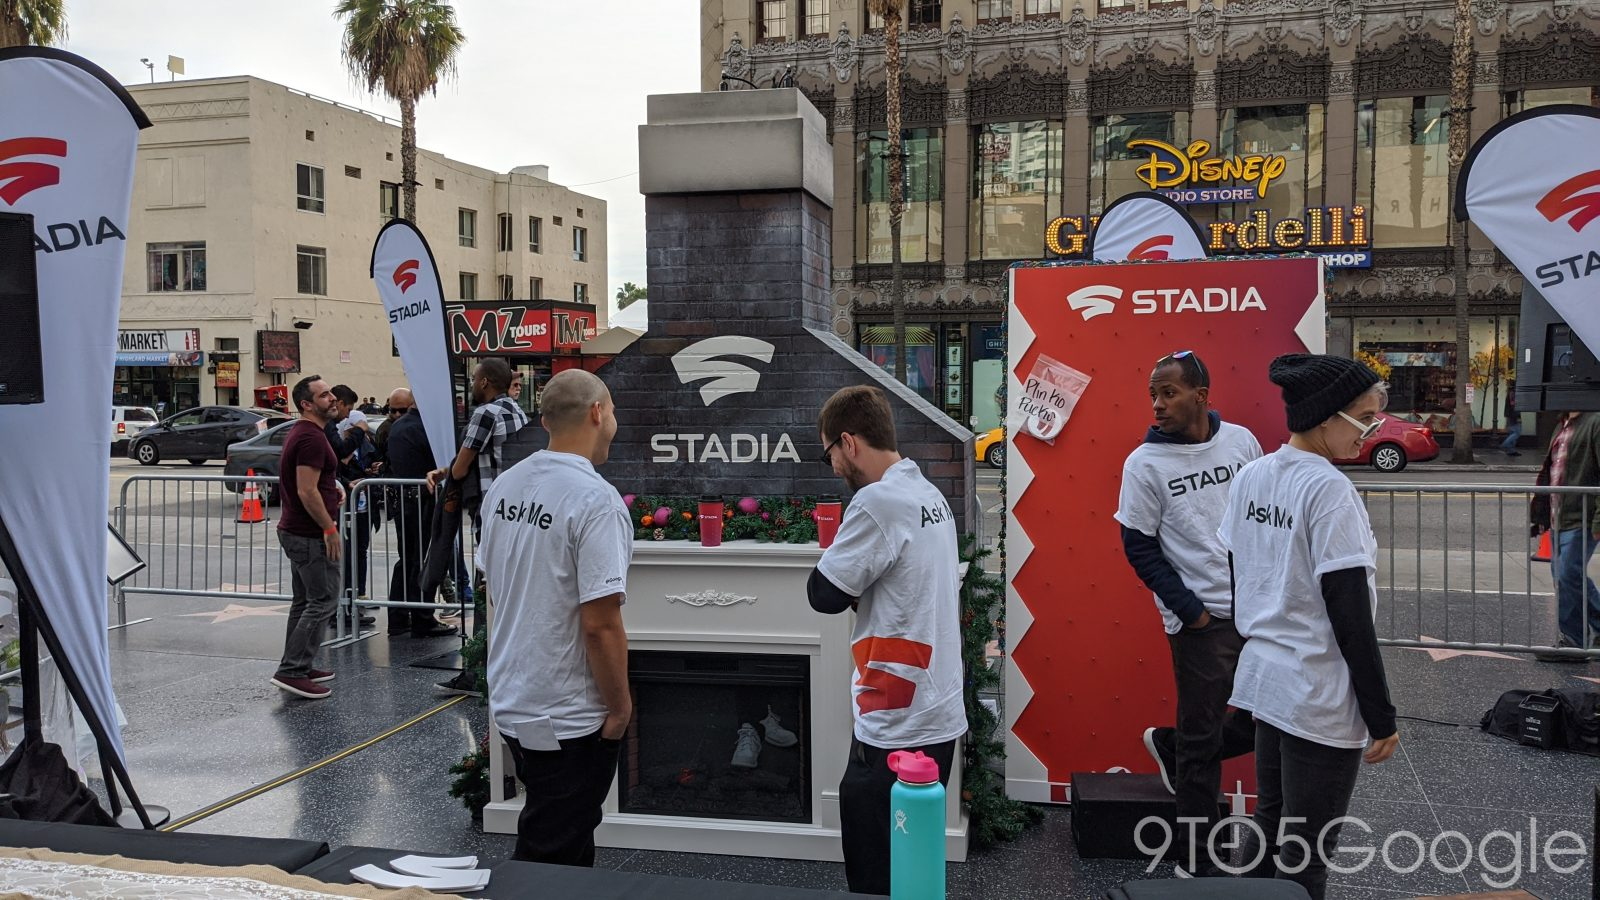 Stadia Holiday Pop-ups: Taking game streaming to the streets [Gallery]